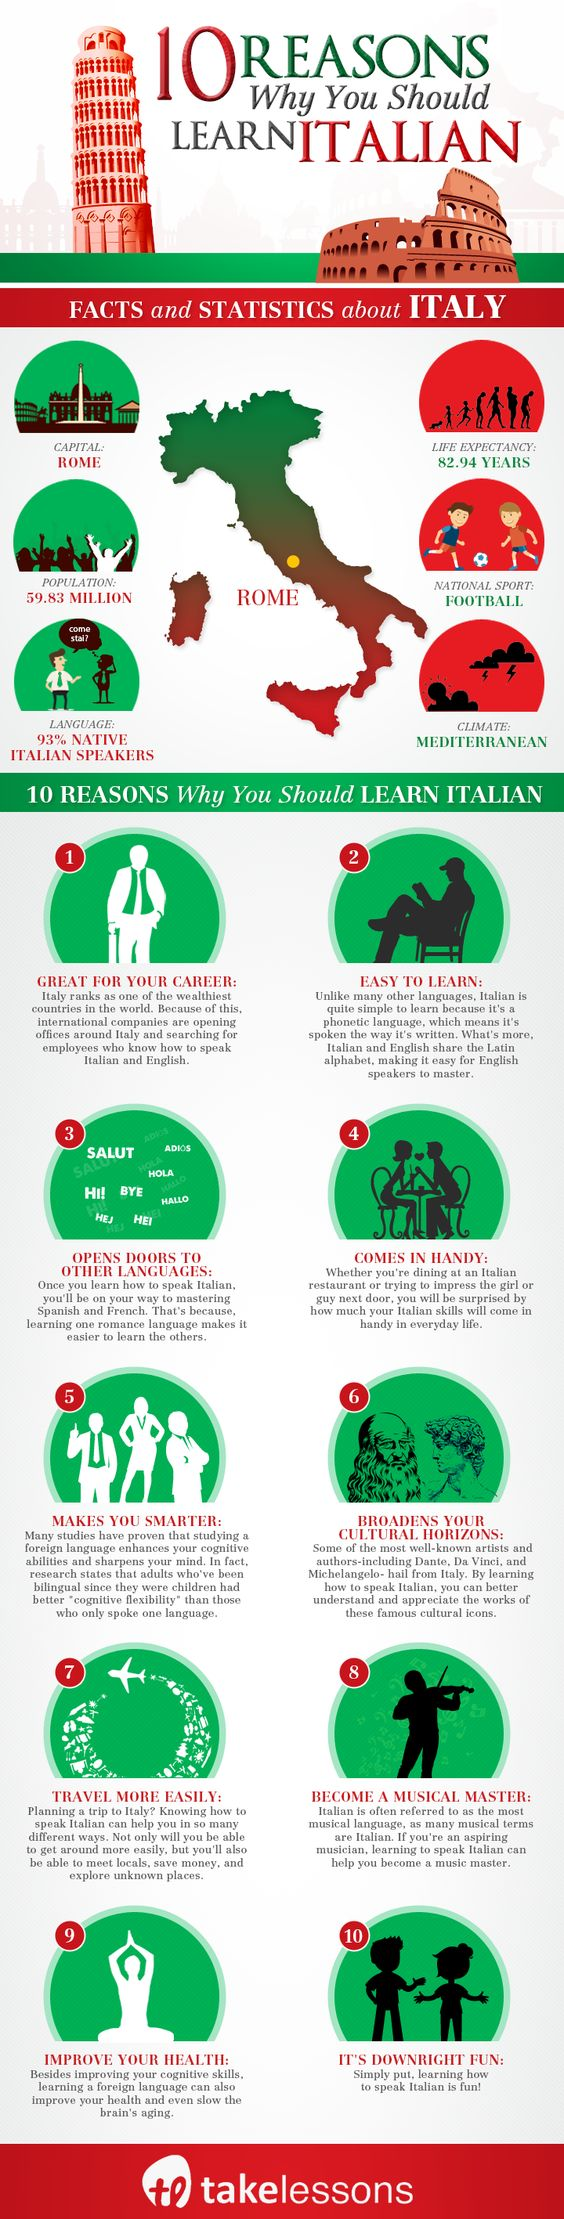 10 Reasons Why You Should Learn to Speak Italian [Infographic] http://takelessons.com/blog/speak-italian-ten-reasons-z09?utm_source=social&utm_medium=blog&utm_campaign=pinterest: